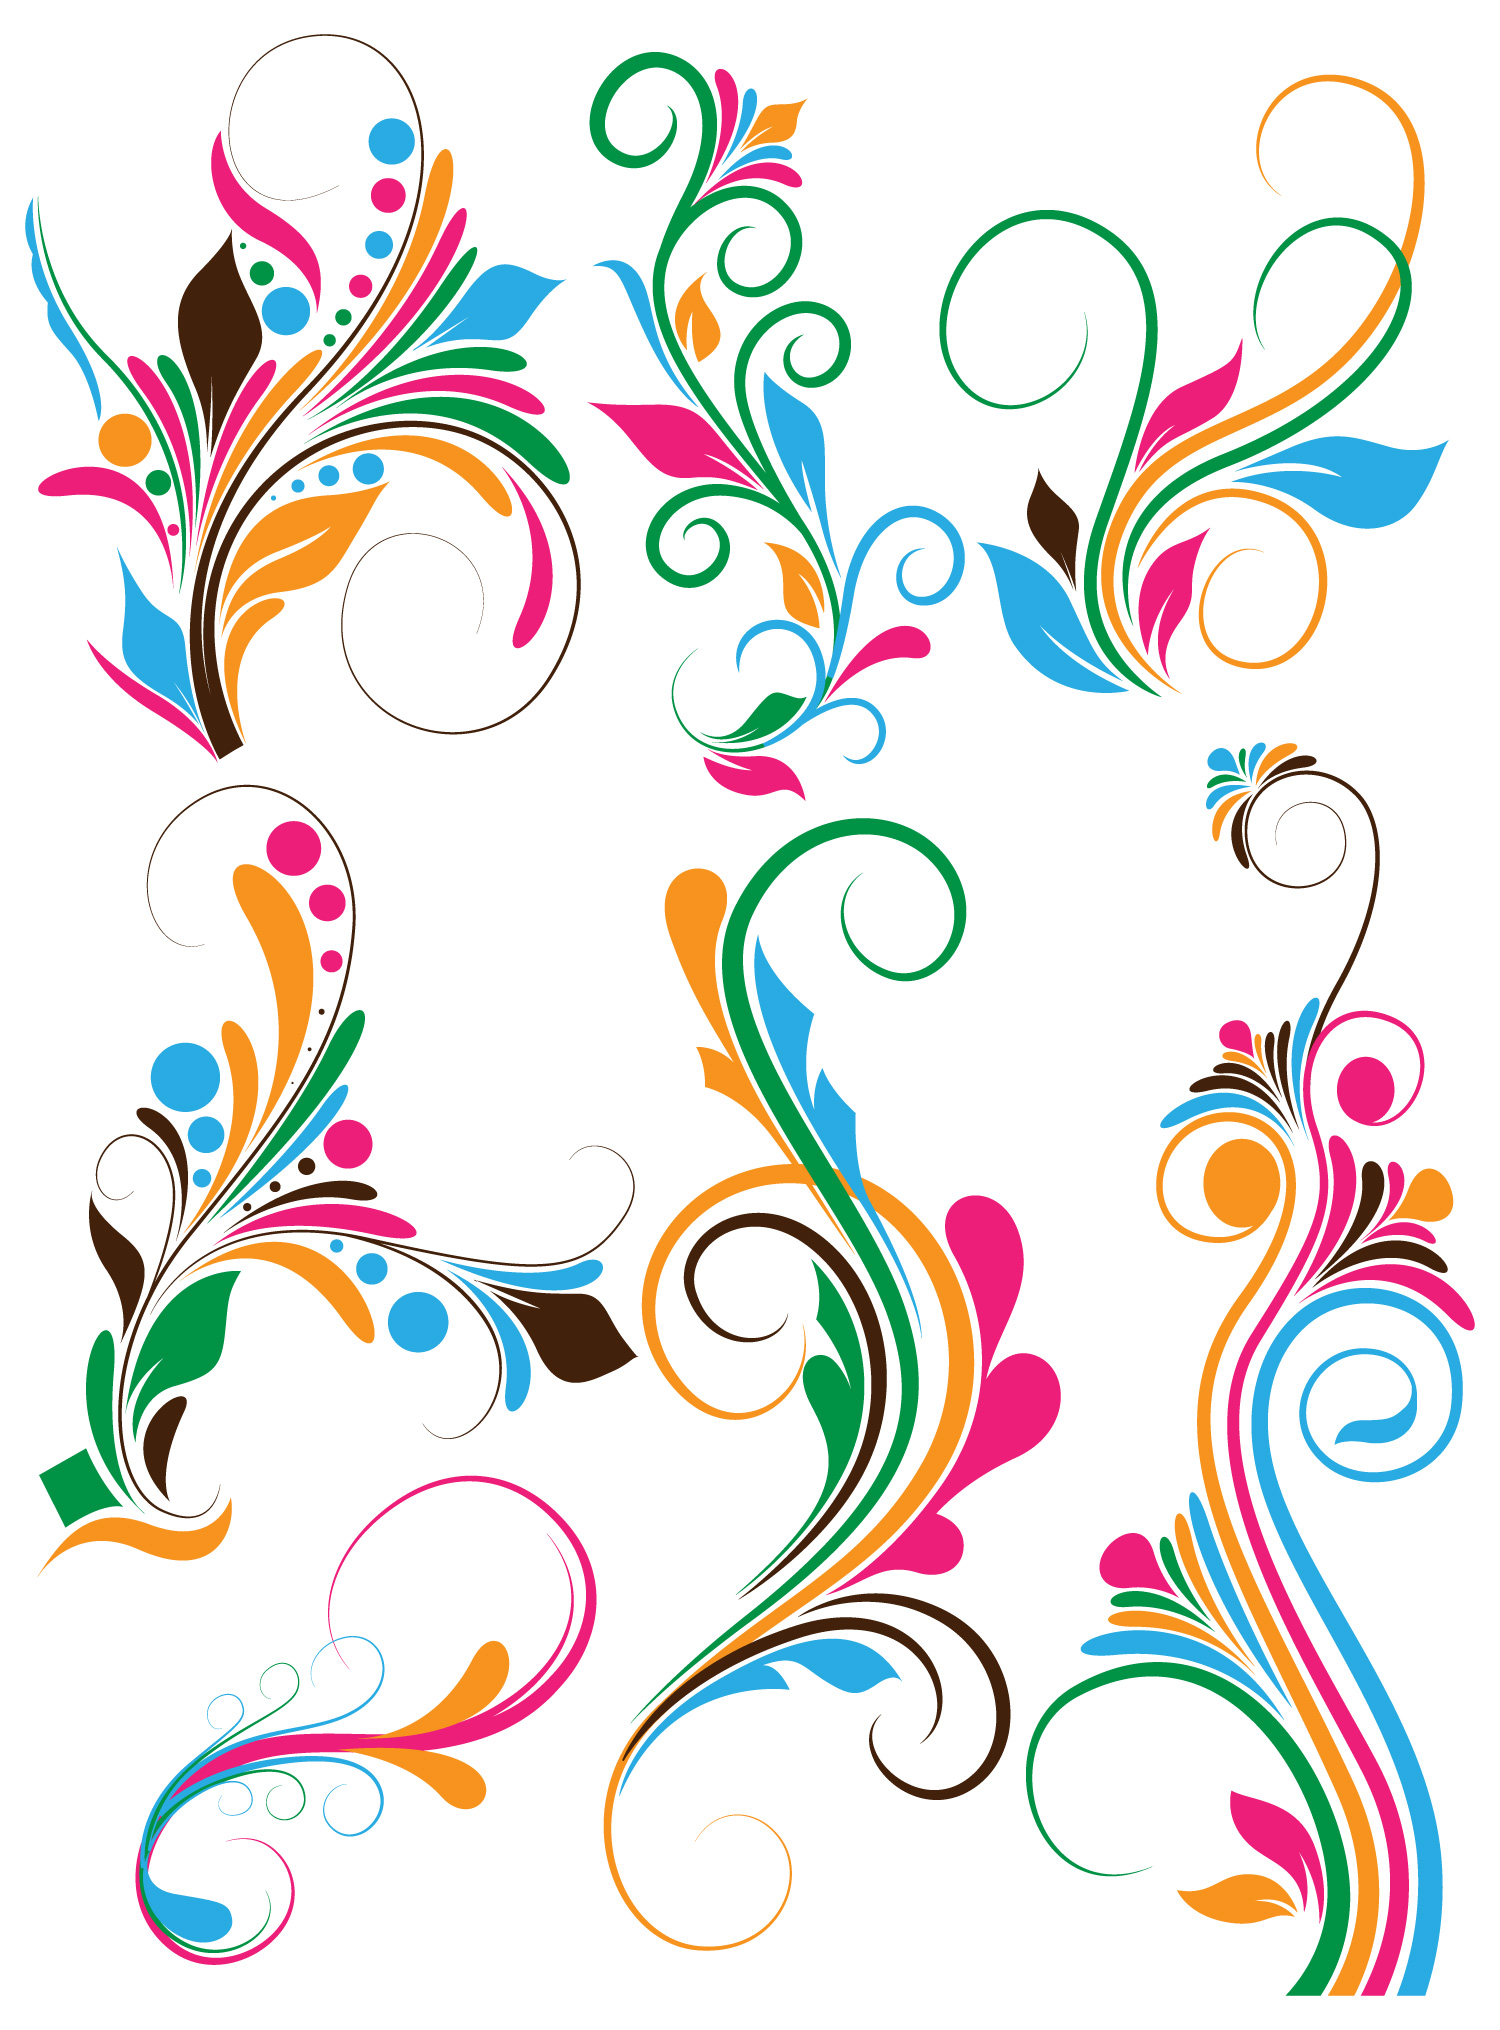 19 Vector Flourish Designs Png Psd Images - Blue Abstract ...